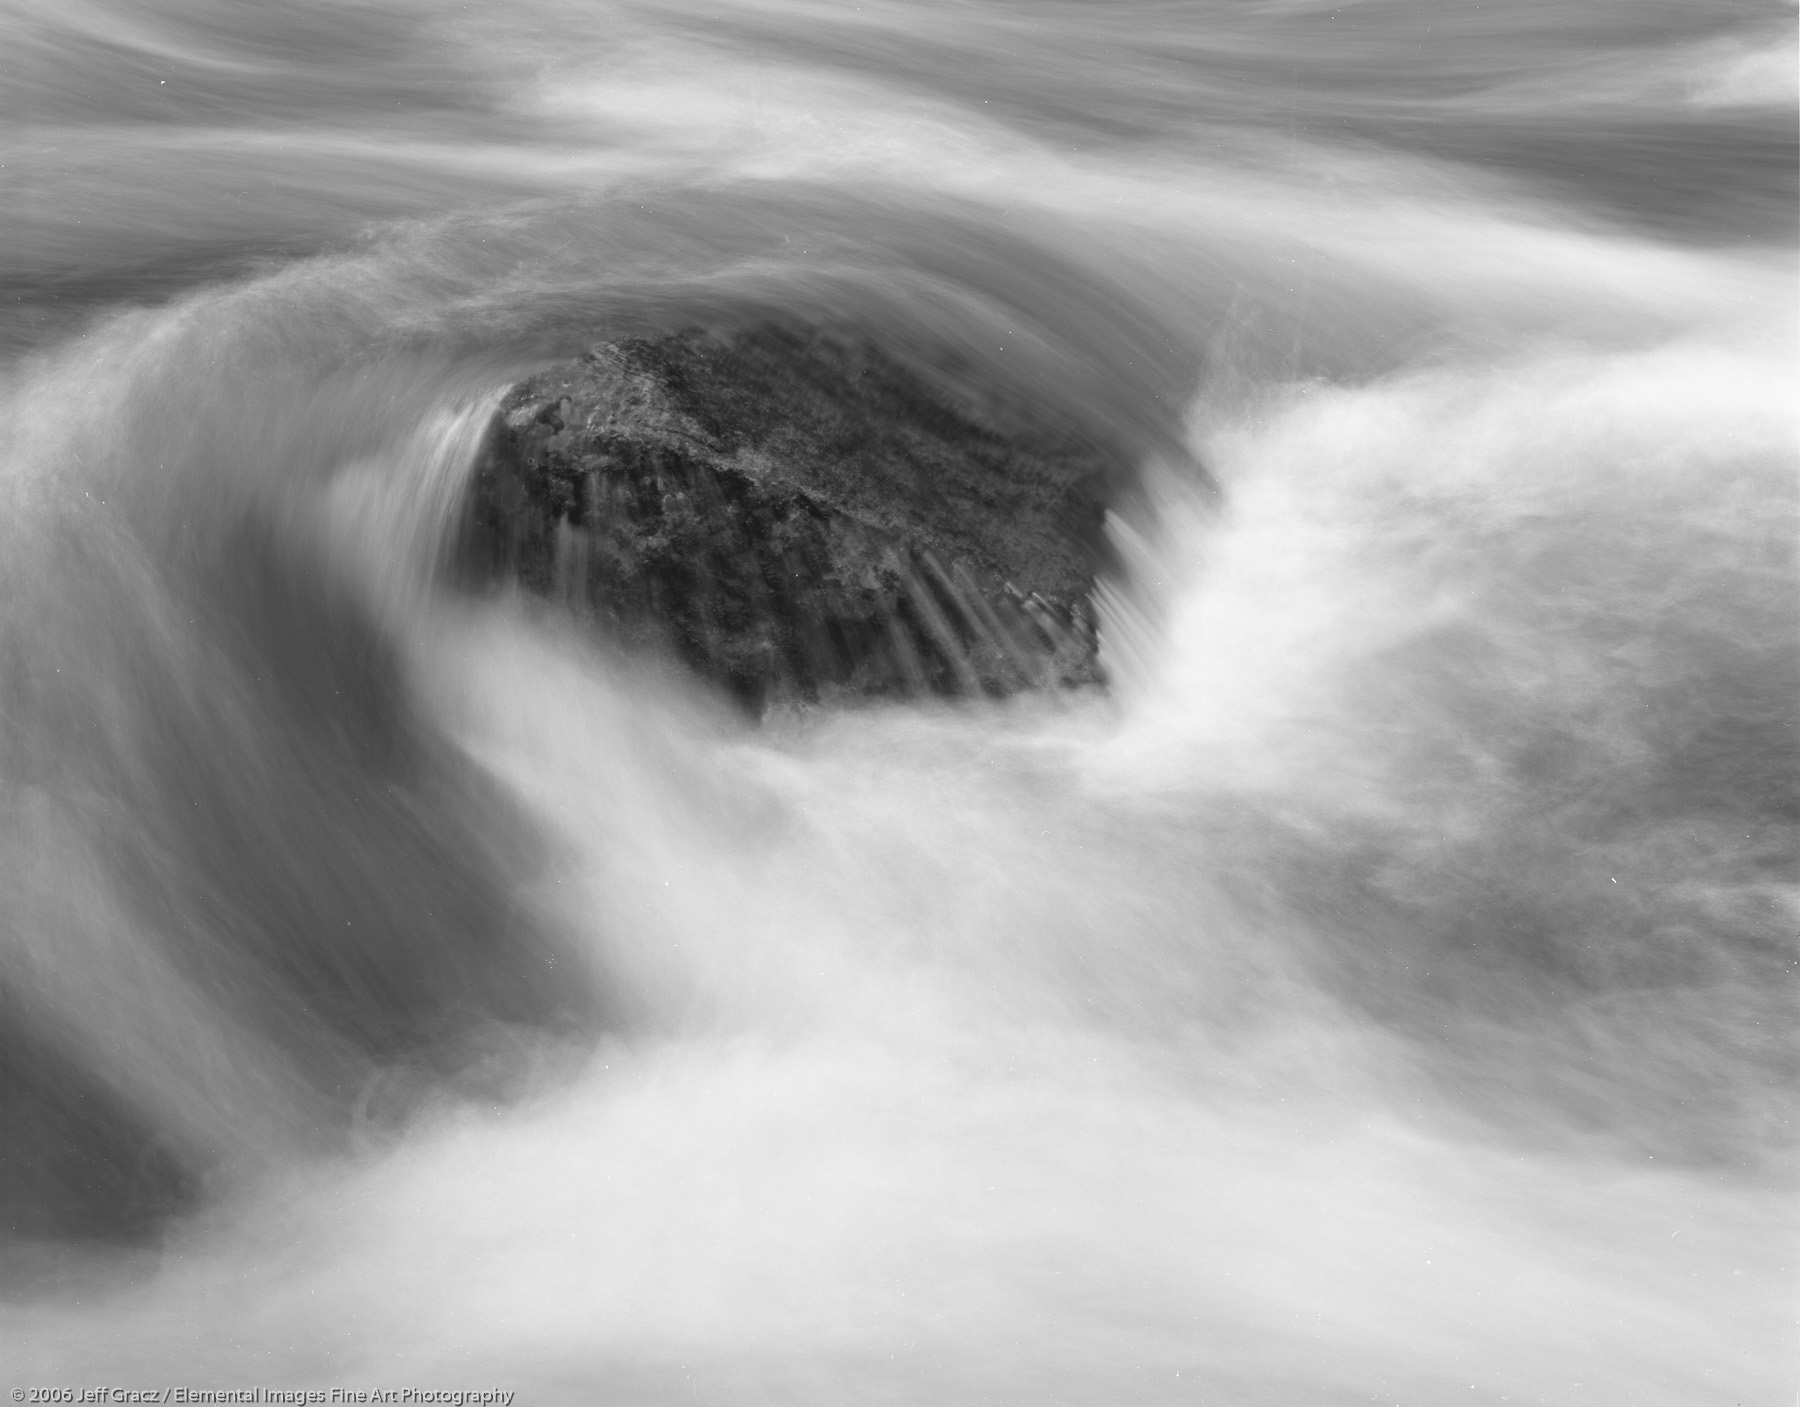 rock and flowing river | umatilla national forest | OR | usa - © © 2006 Jeff Gracz / Elemental Images Fine Art Photography - All Rights Reserved Worldwide